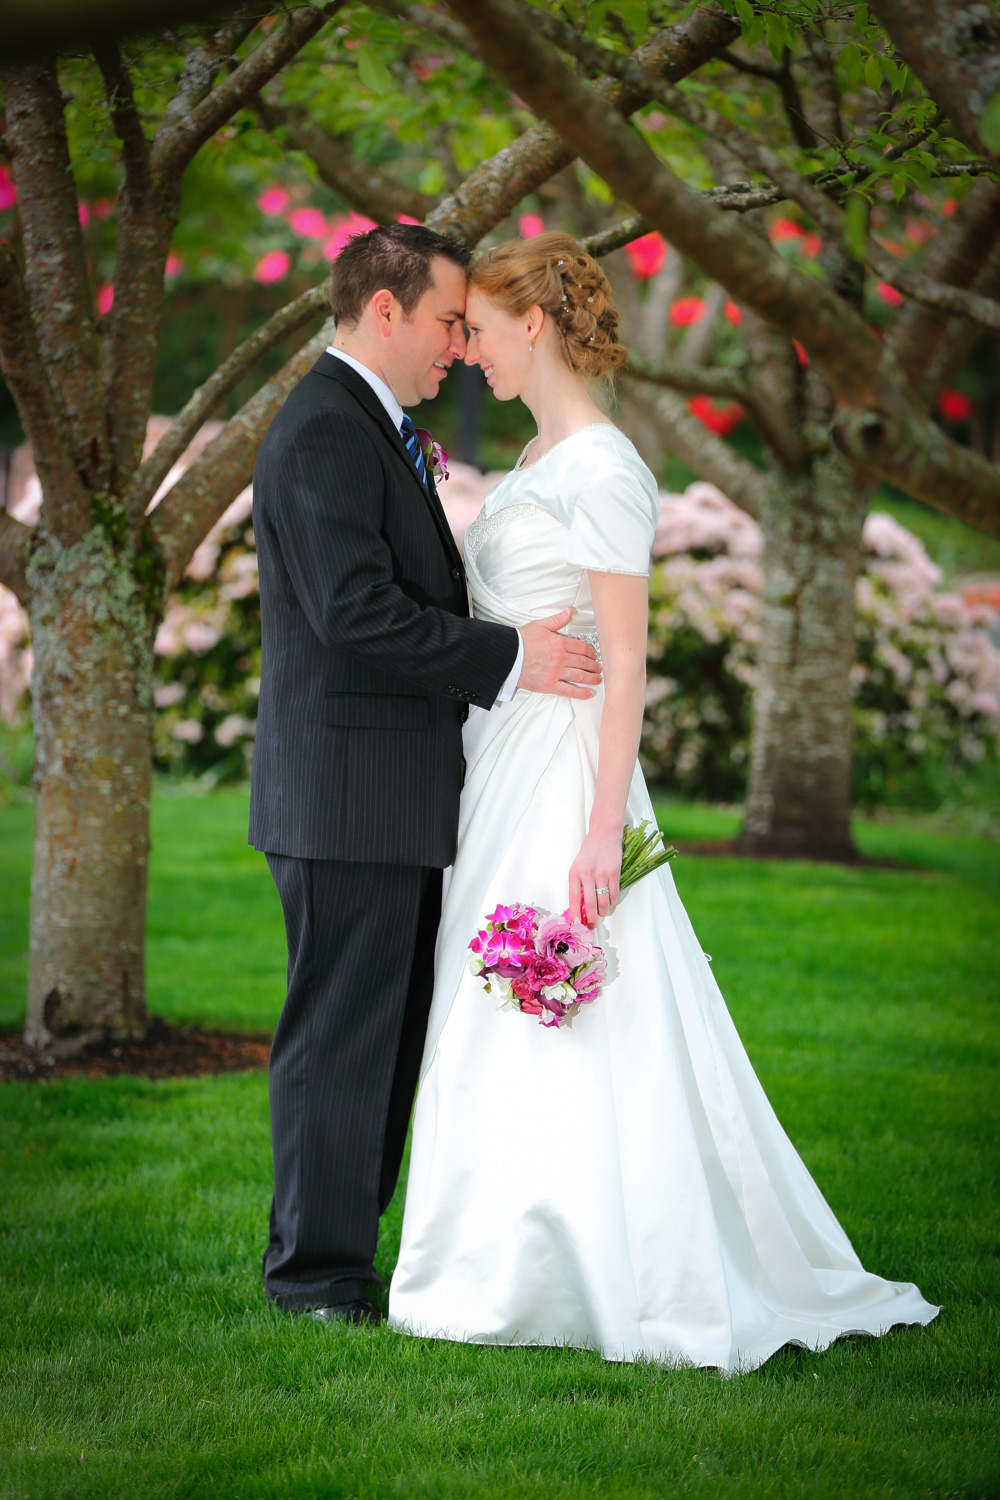 Wedding Photos LDS Temple Bellevue Washington11.jpg